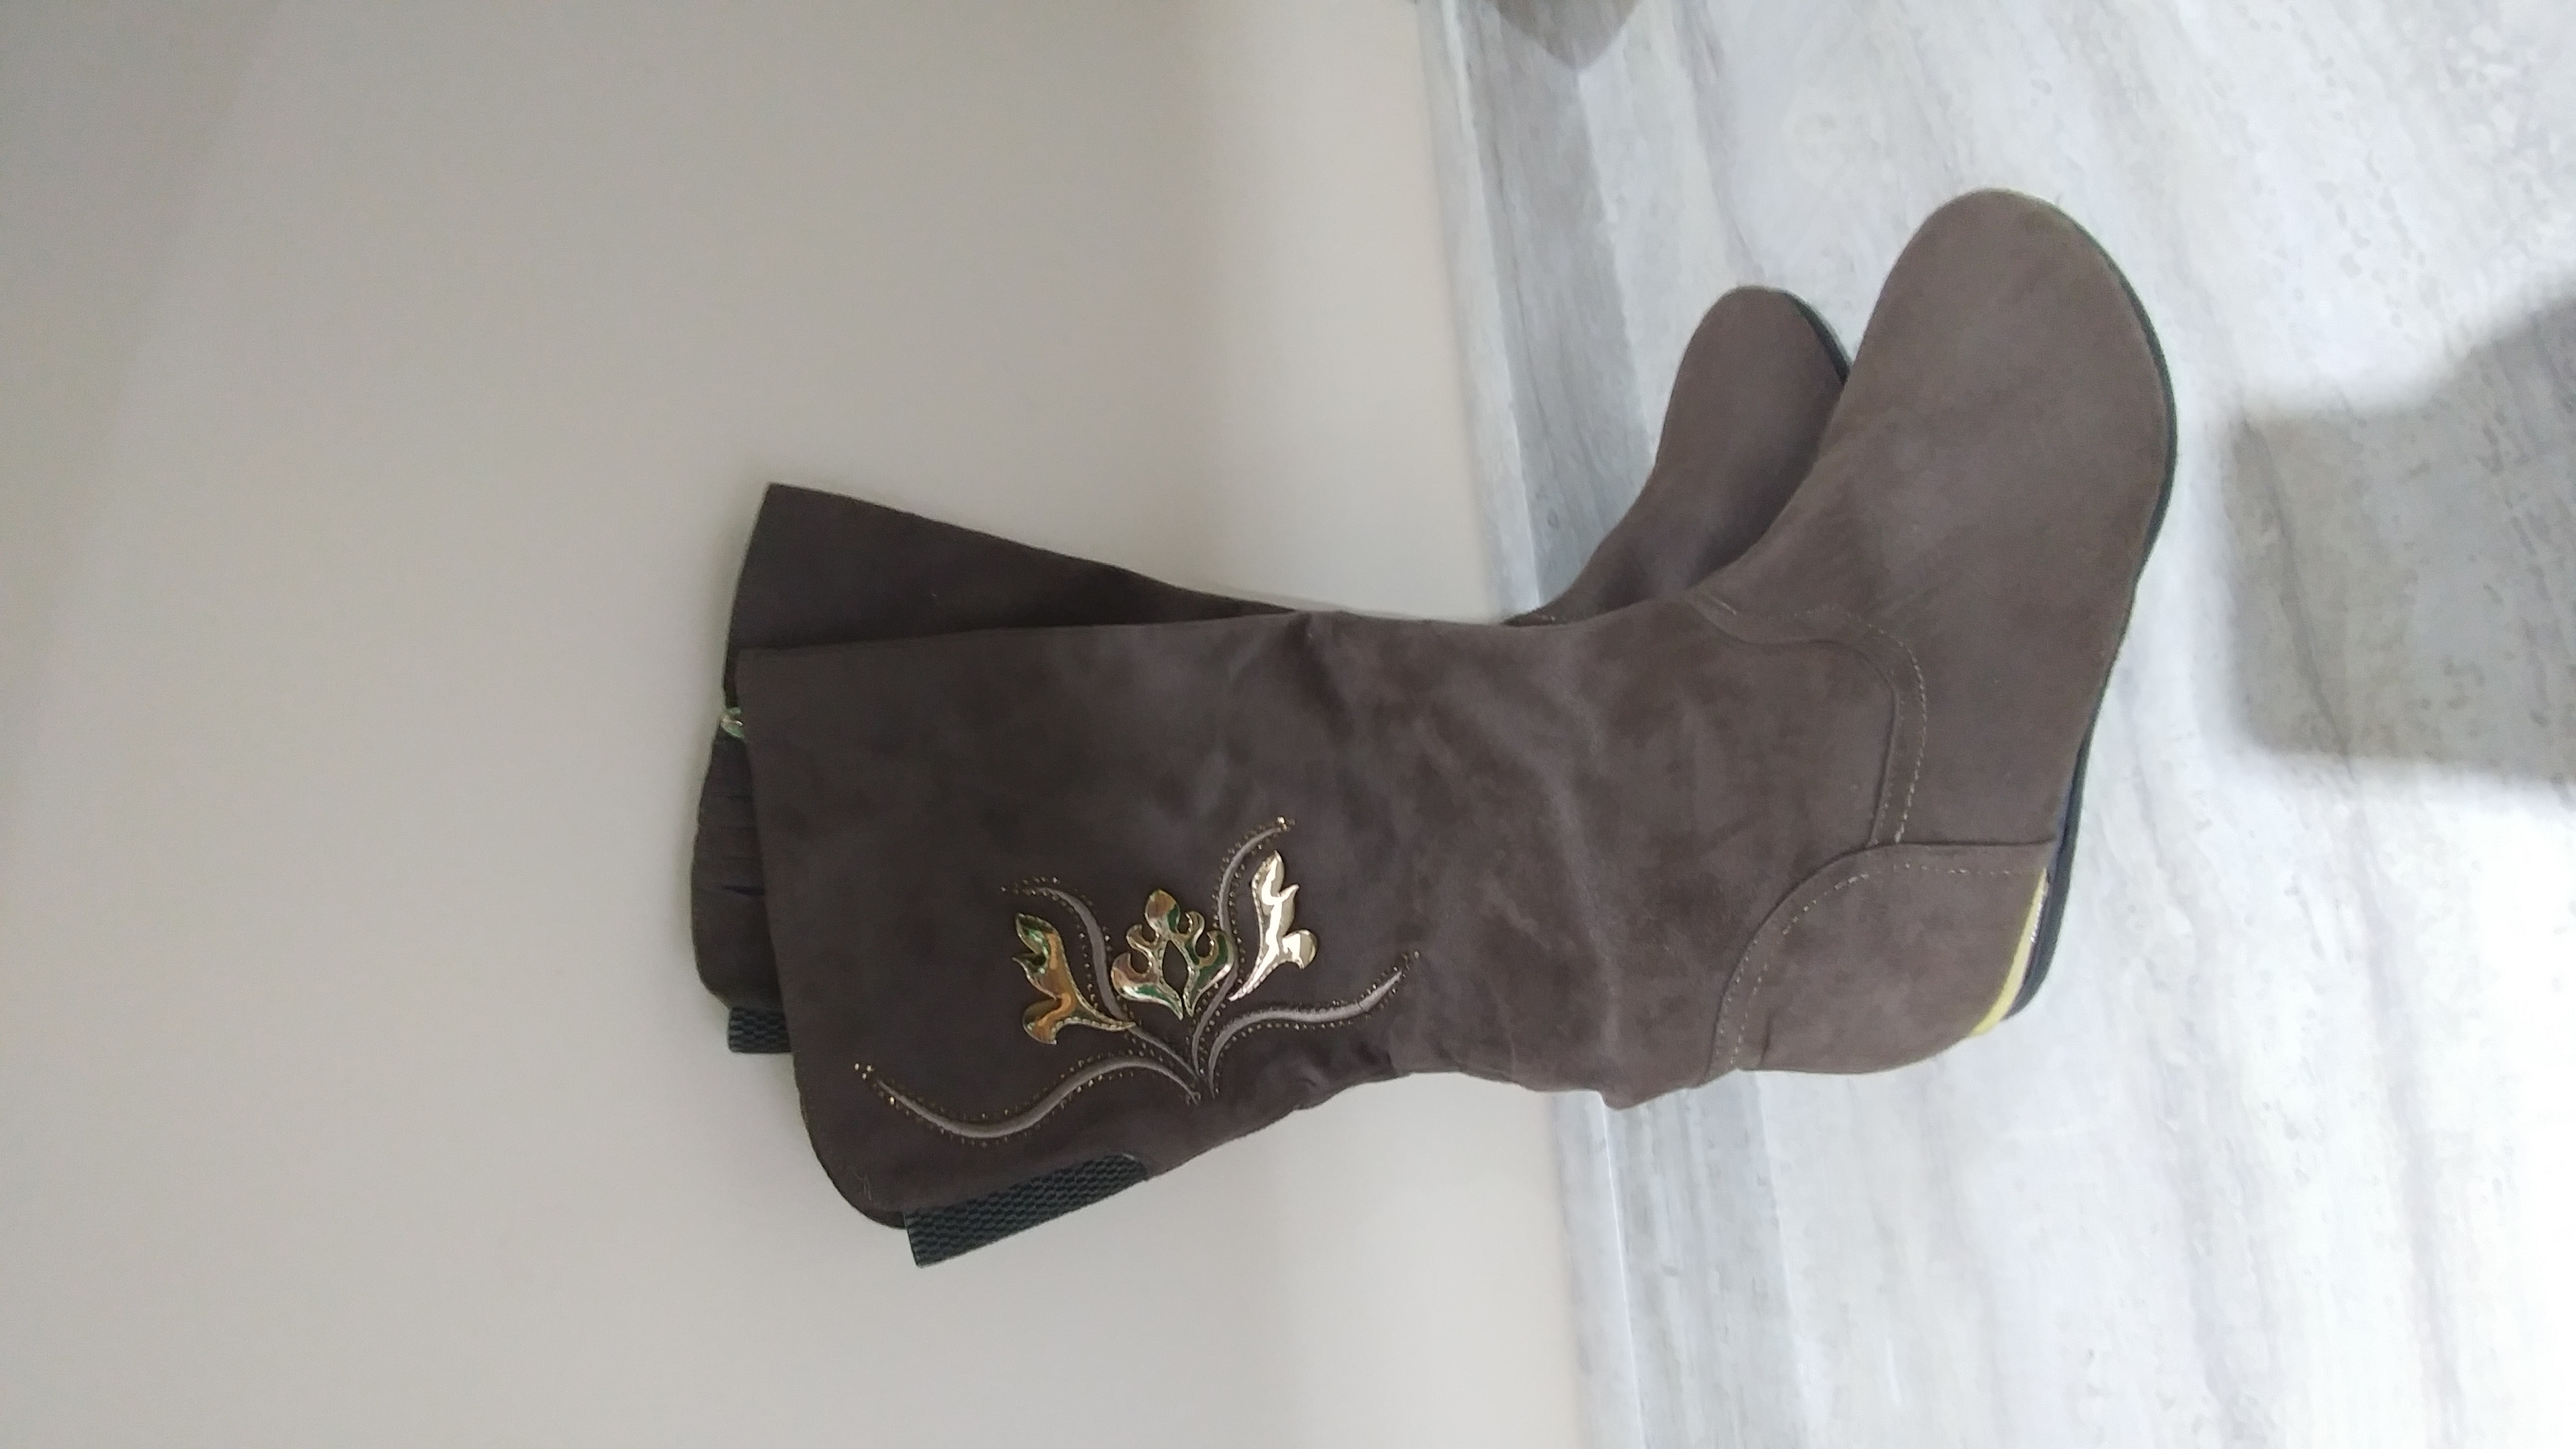 Brand new boots, size 10